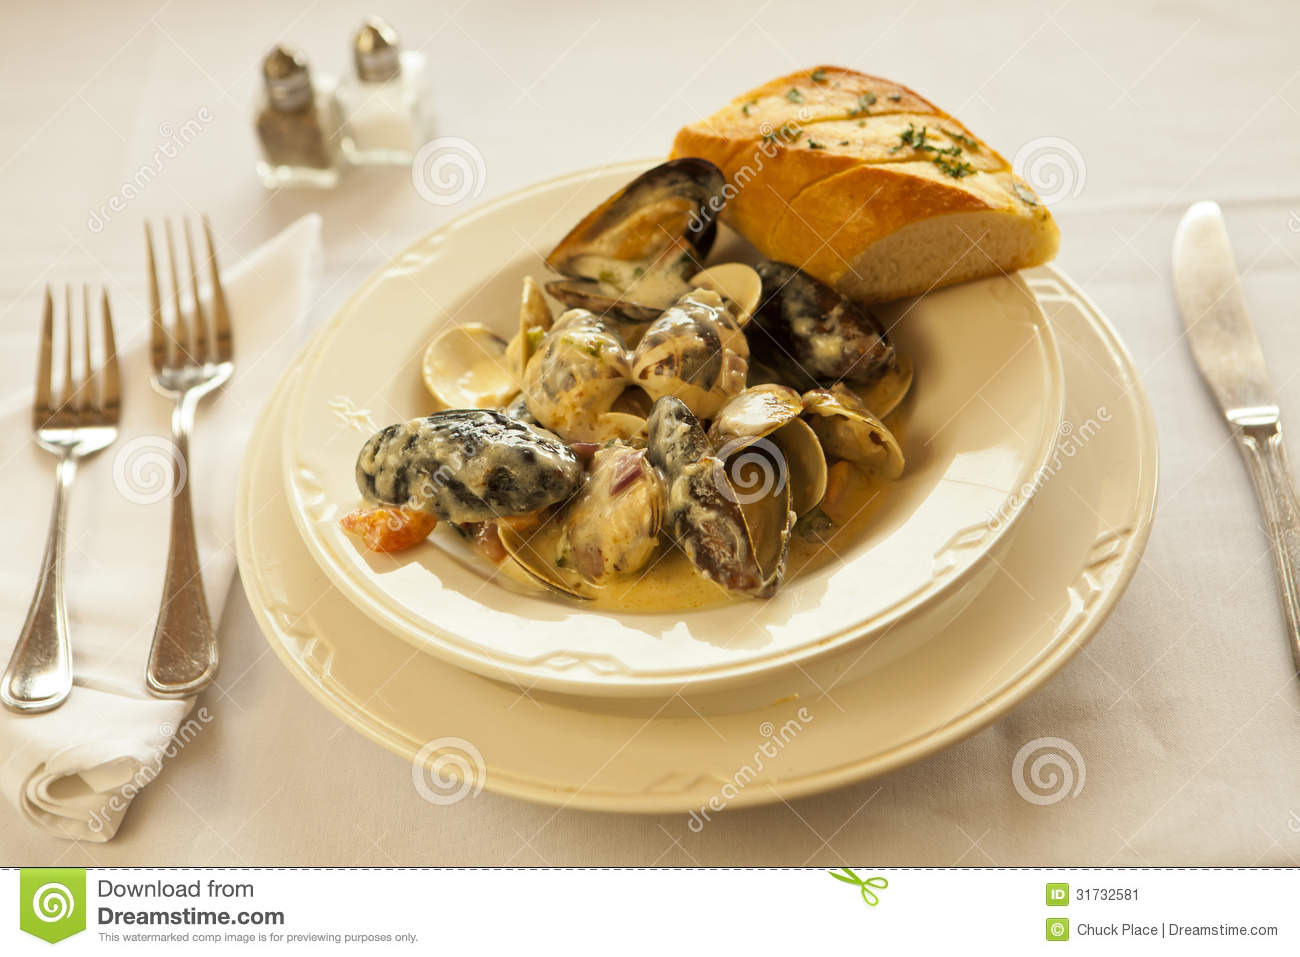 Steamed Mussels And Clams In Garlic Cream Sauce Stock Image - Image ...